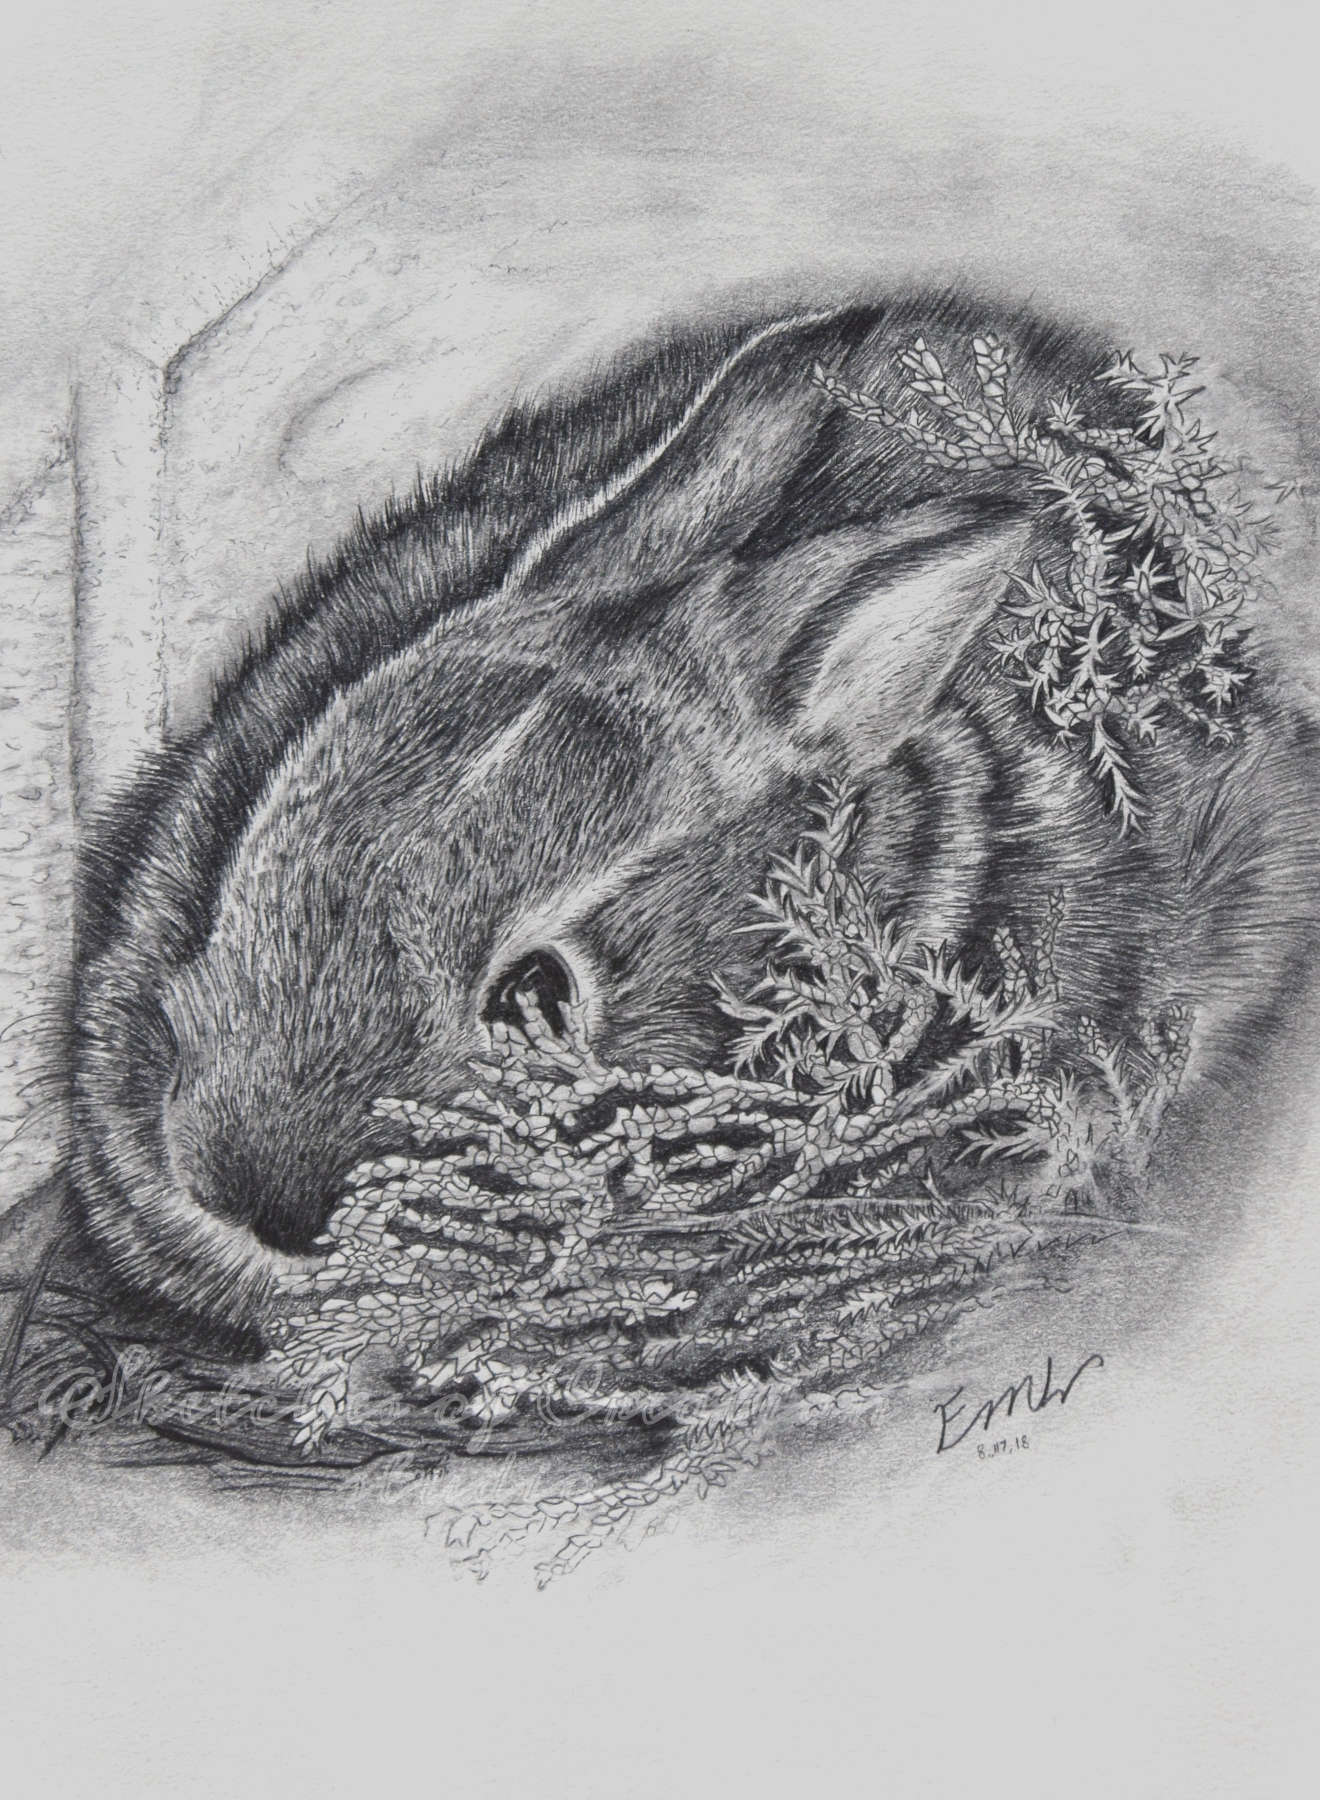 'Hiding' a drawing of a baby bunny. 6x8 inches. Completed August 2018